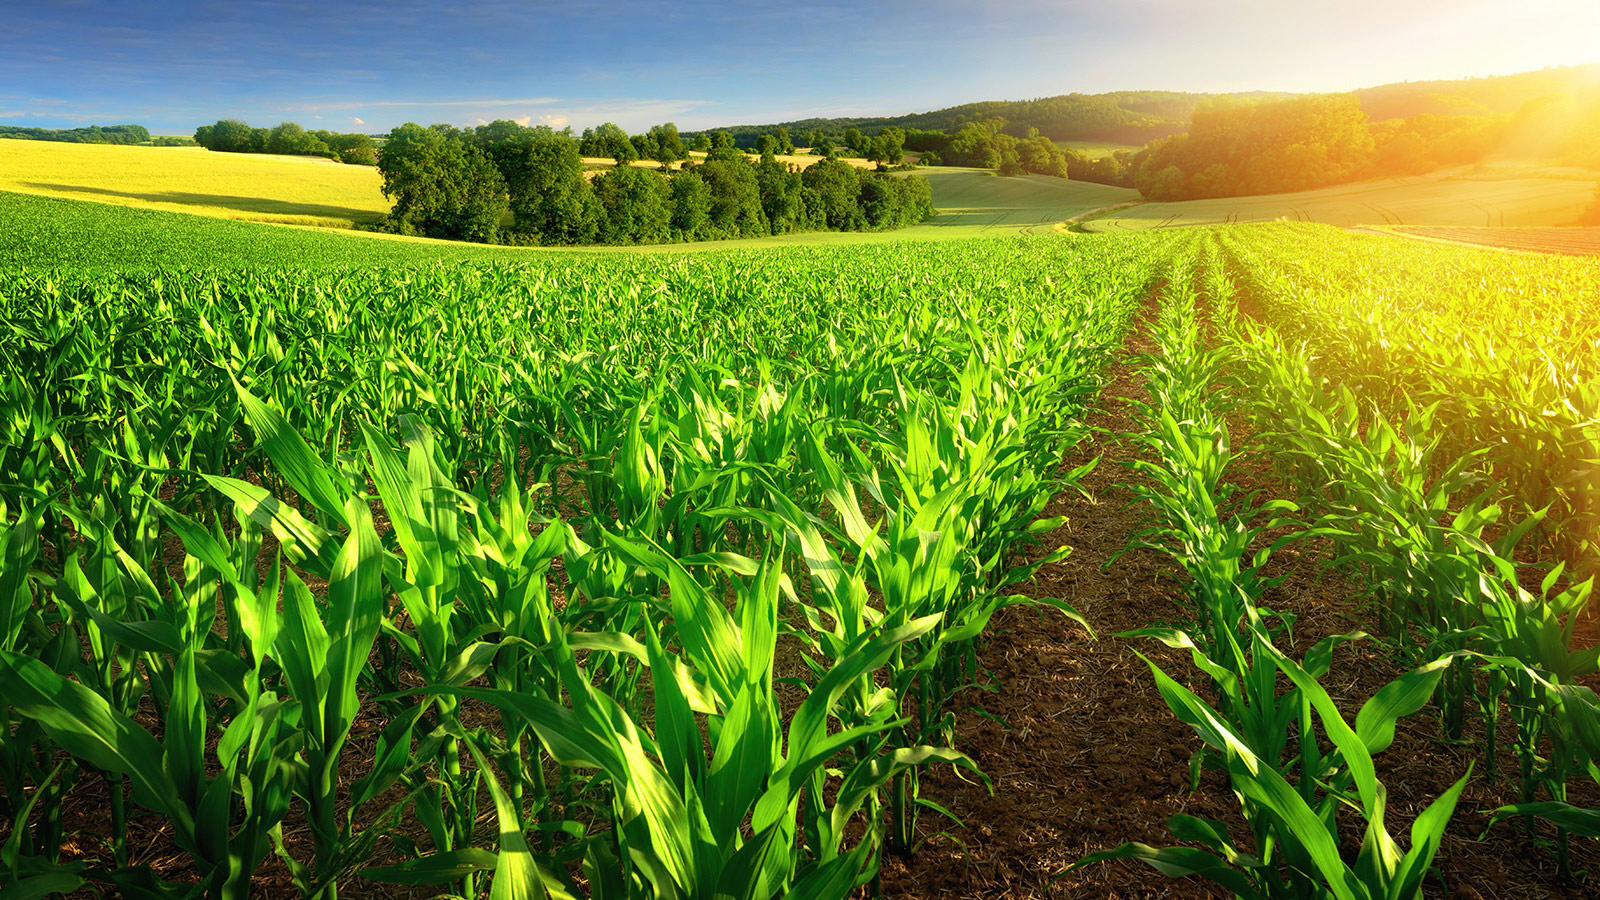 Study Reveals Corn Ethanol Use Reduces Carbon Footprint, Diminishes Greenhouse Gases